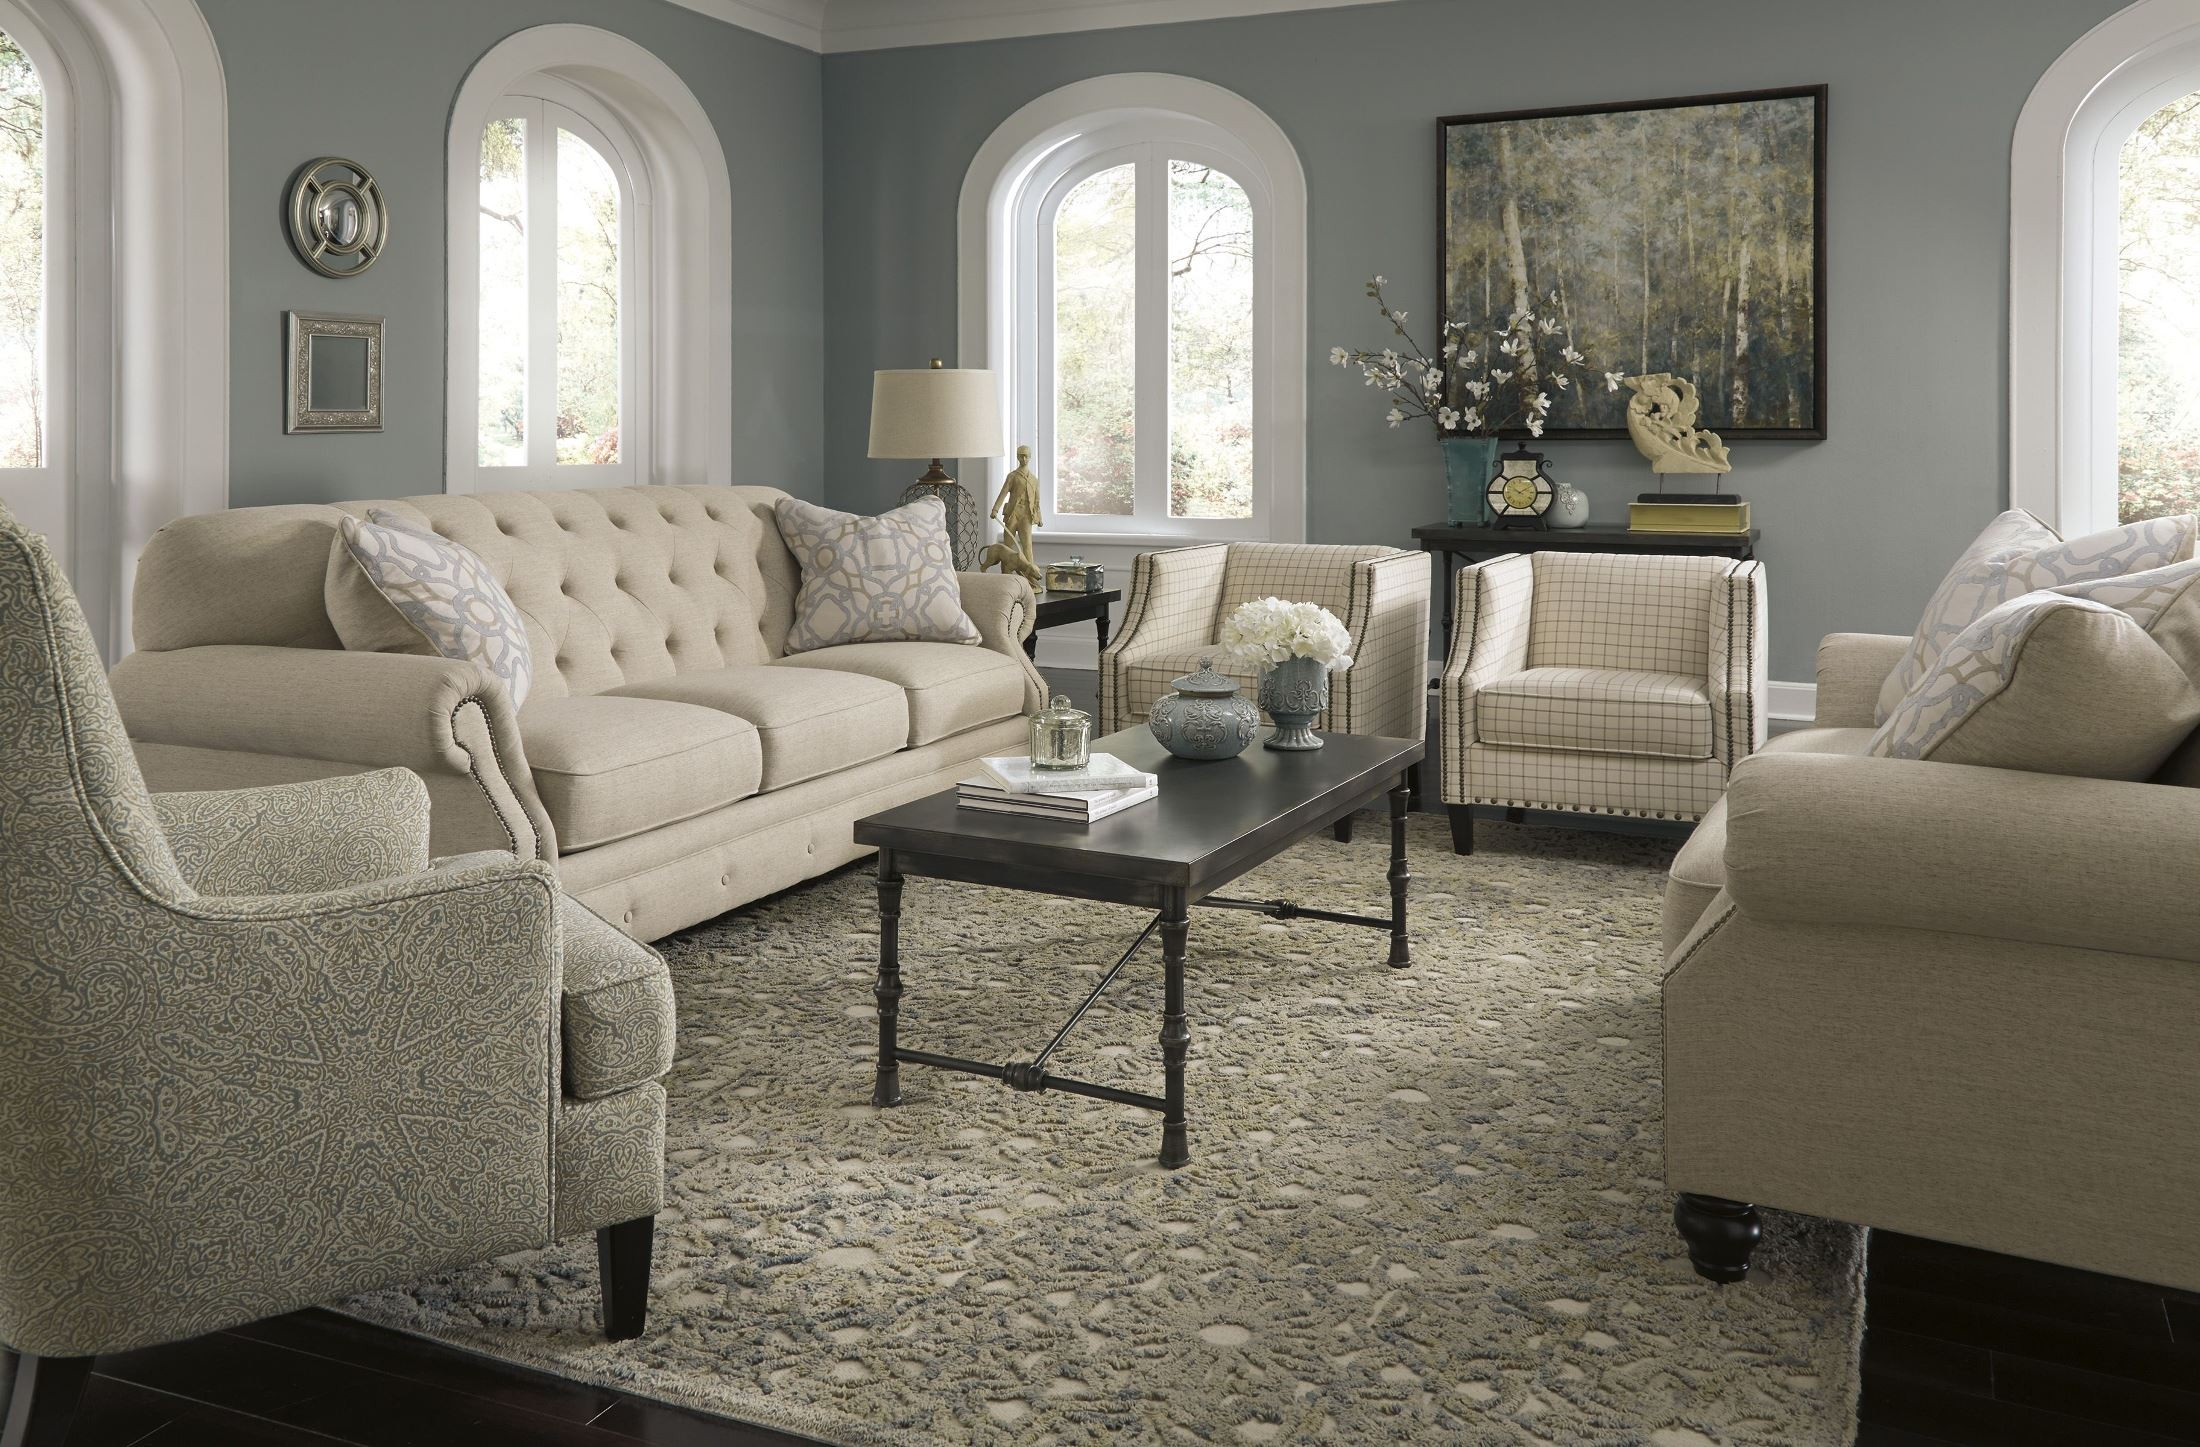 Kieran natural living room set from ashley 4400038 for 2 sofa living room ideas